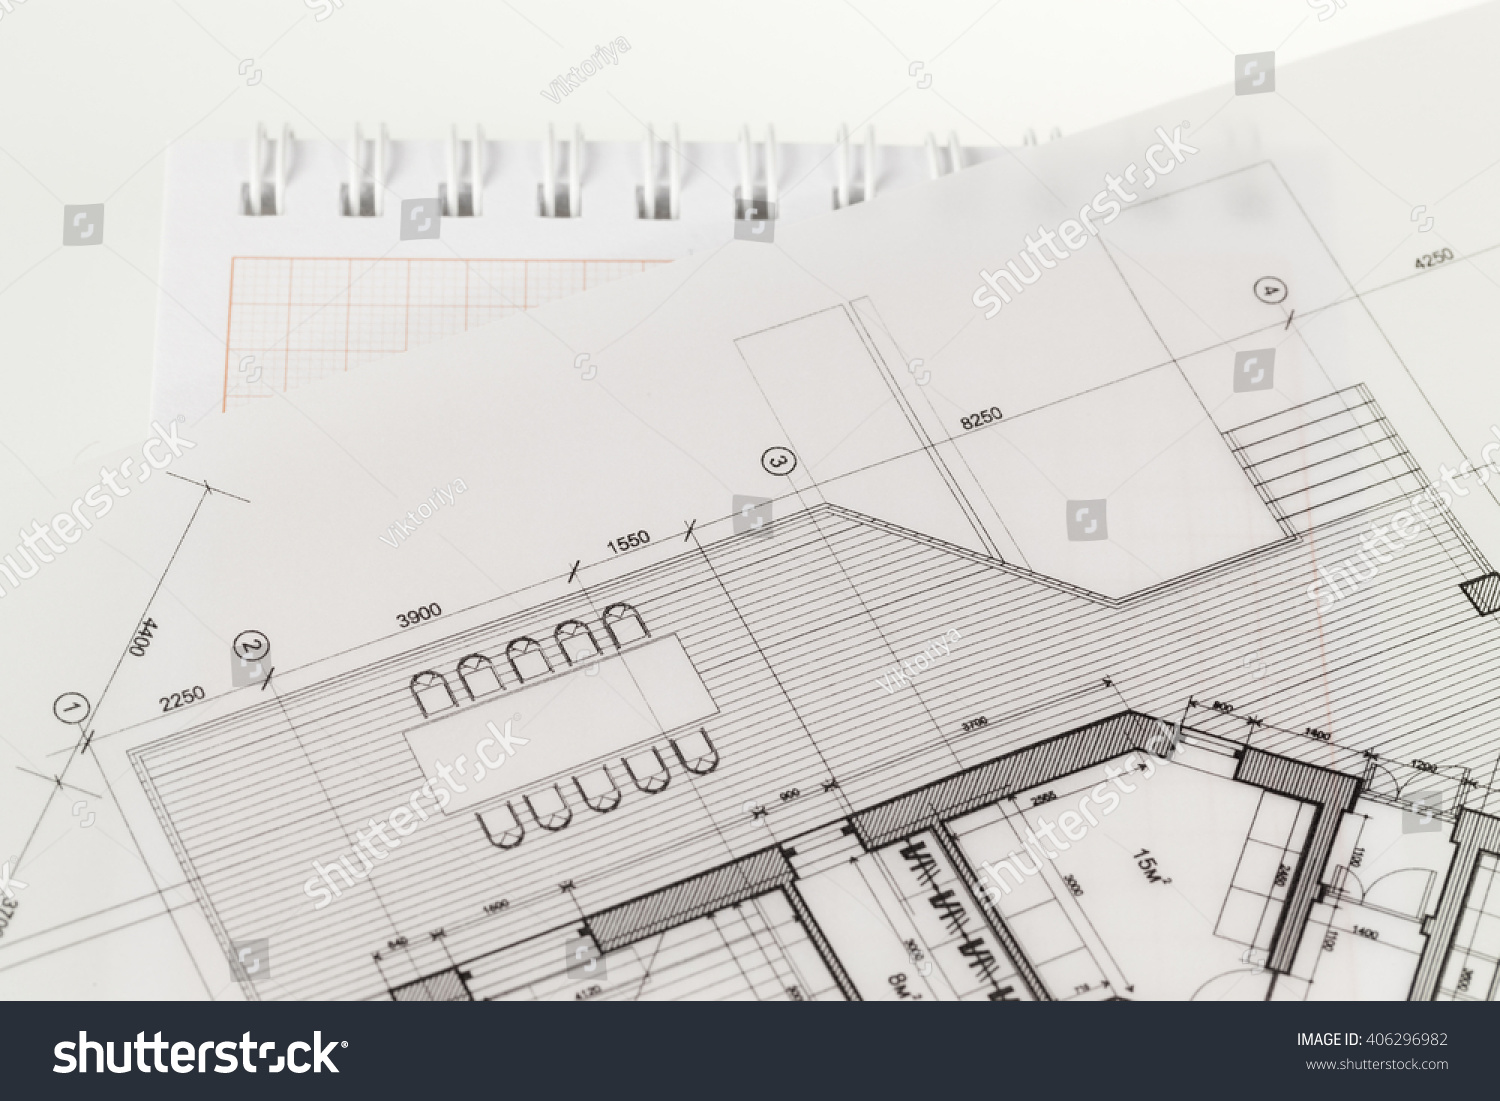 Architecture blueprint house plan notepad stock photo royalty free architecture blueprint house plan notepad stock photo royalty free 406296982 shutterstock malvernweather Image collections